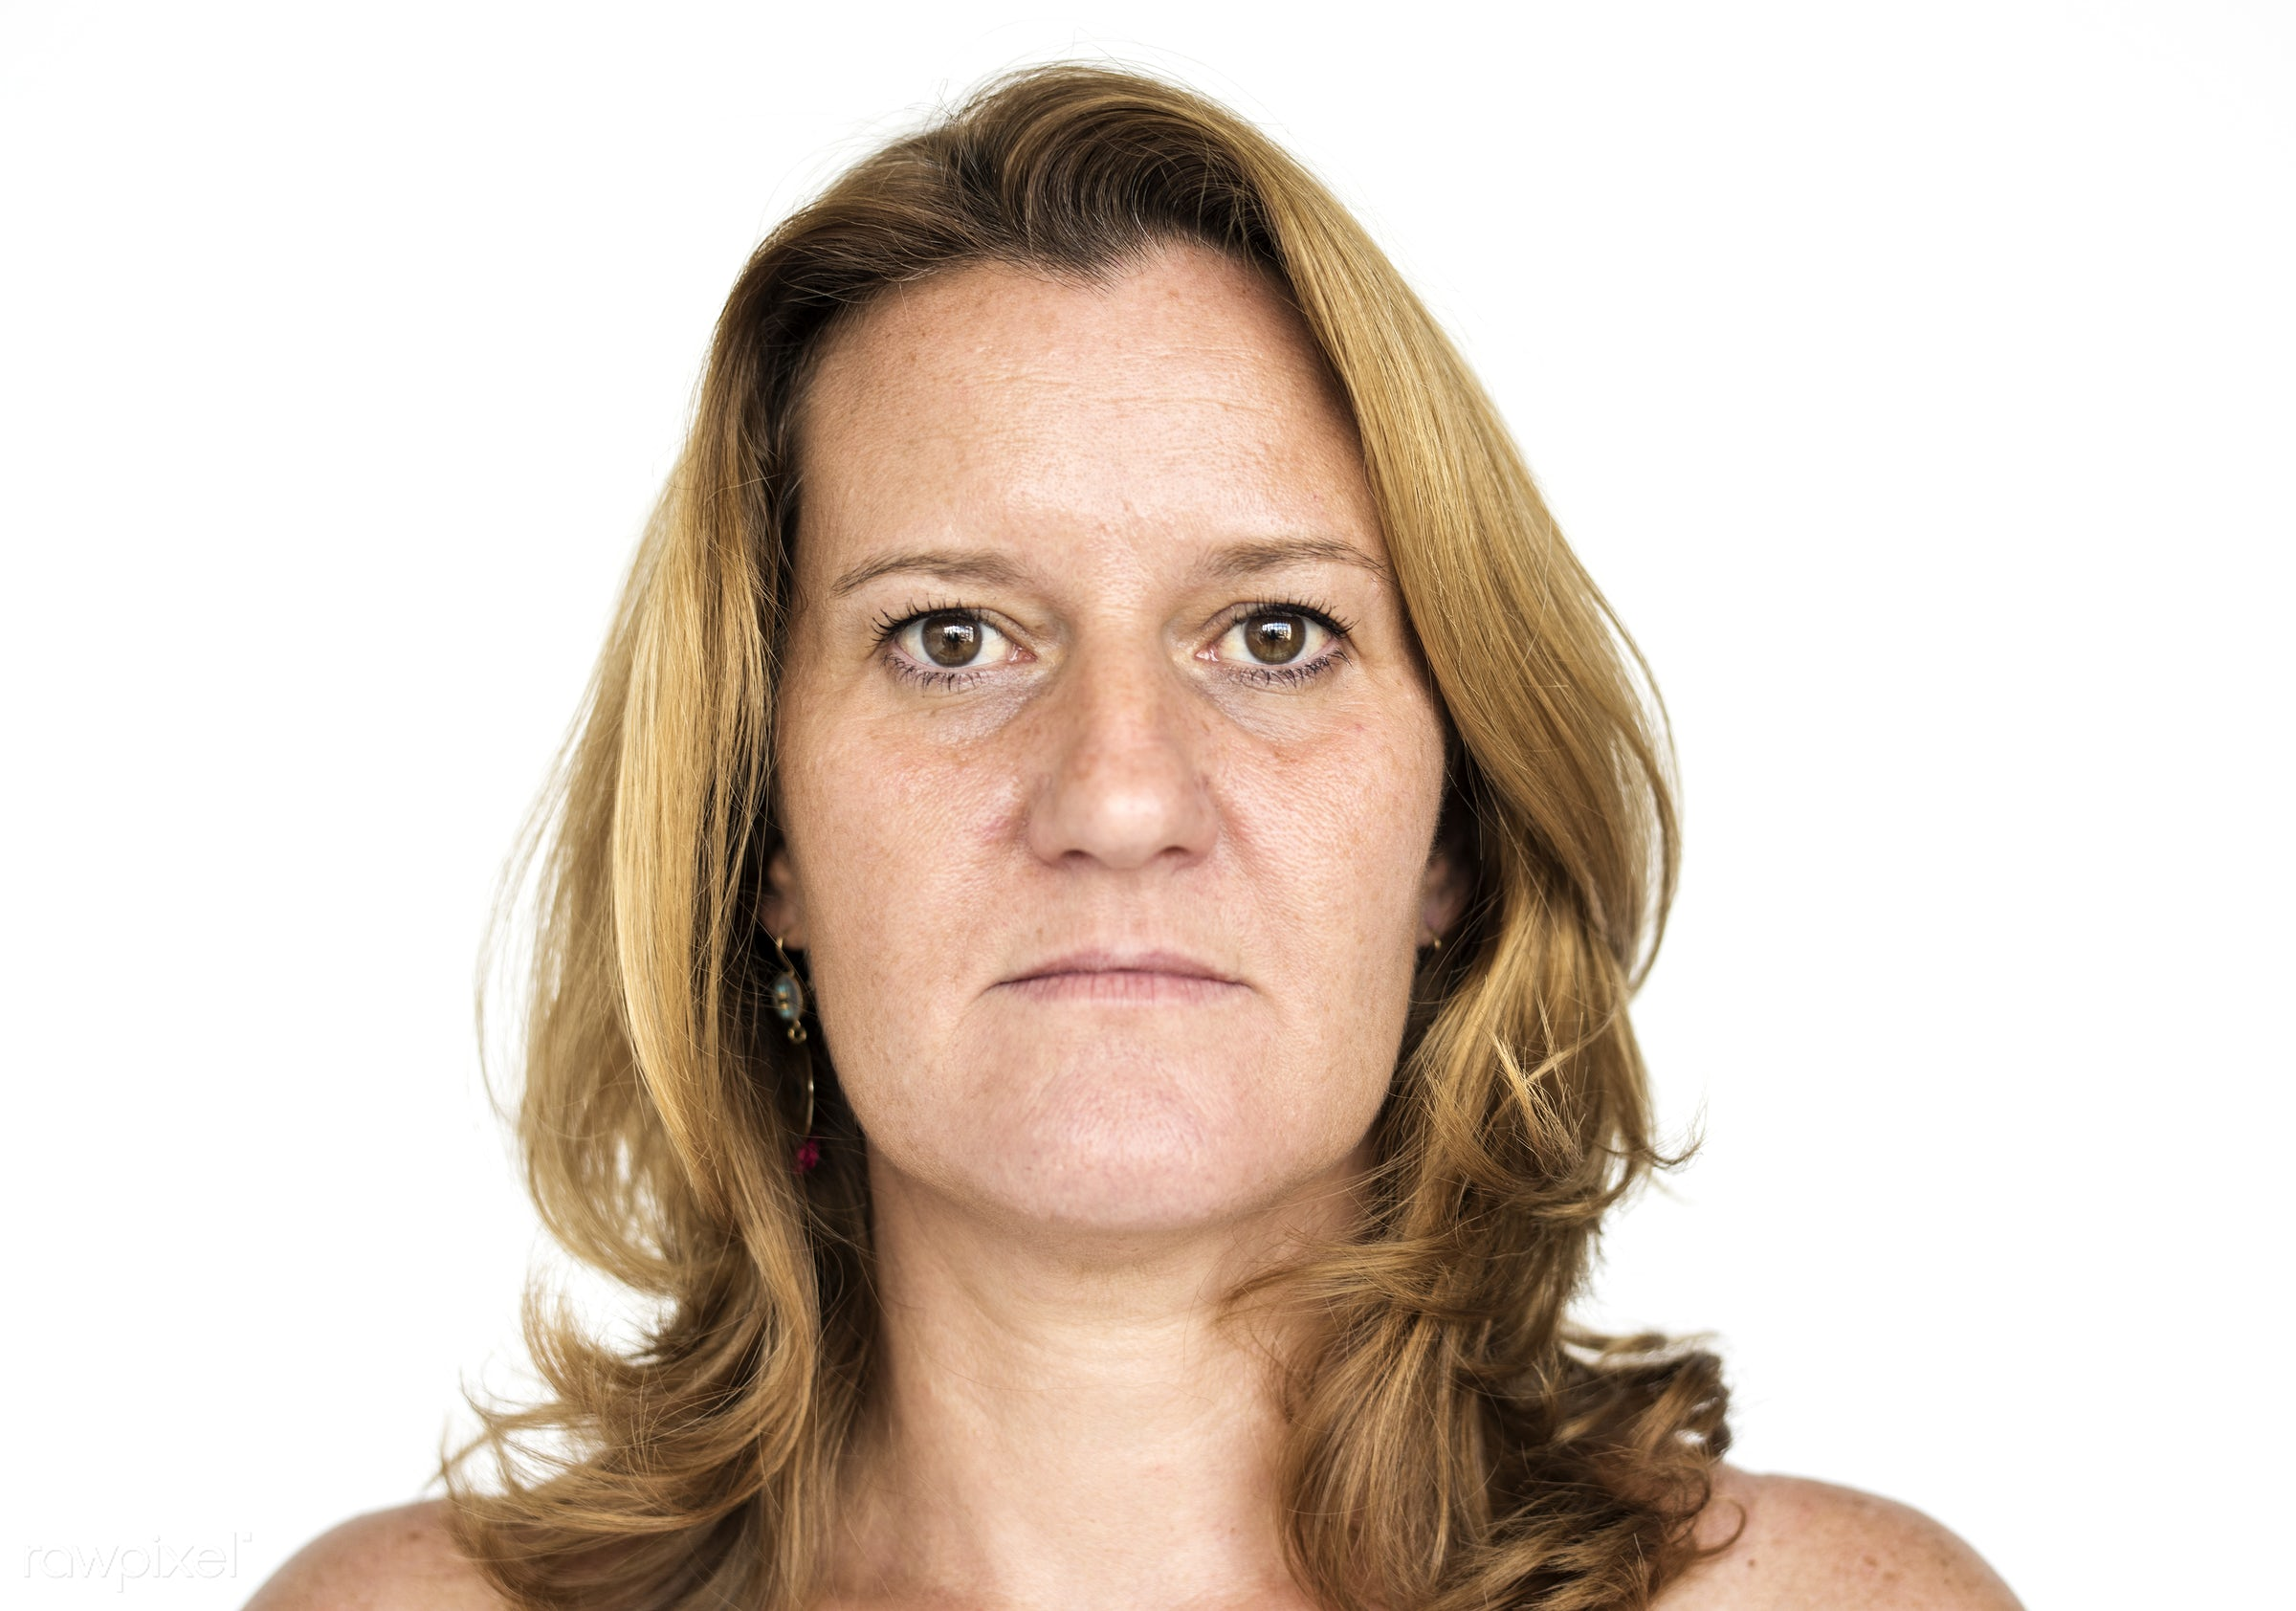 Portrait of a mature woman - expression, studio, model, person, isolated on white, angry, people, race, caucasian, style,...